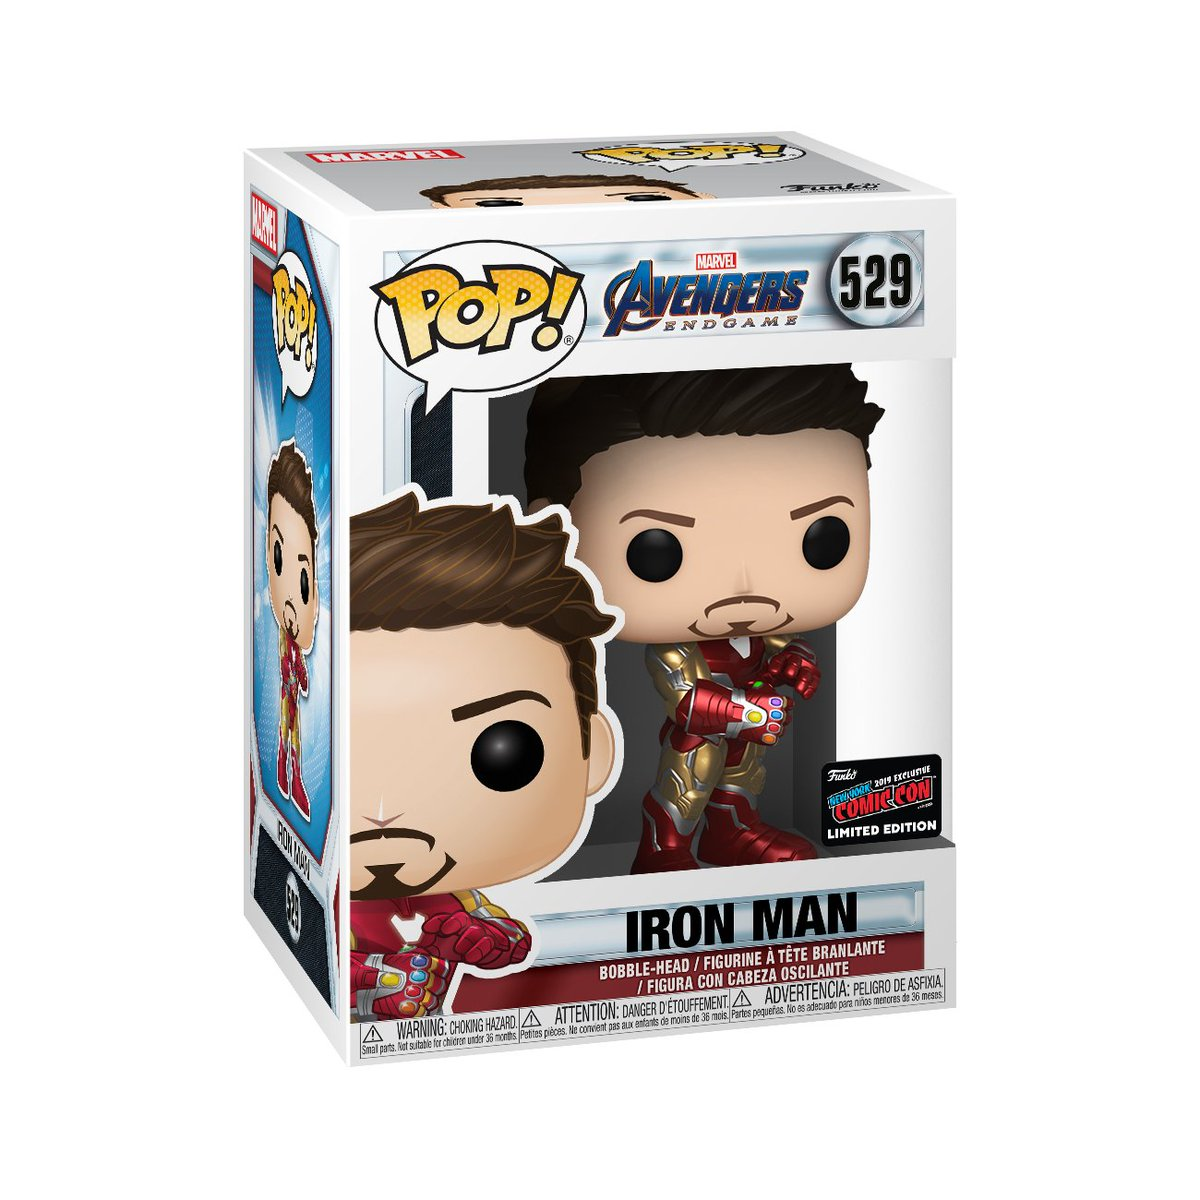 RT & follow @OriginalFunko for a chance to WIN a 2019 #NYCC exclusive Iron Man Pop! #Funko #Exclusive #Giveaway #FunkoNYCC #NYCC #Marvel